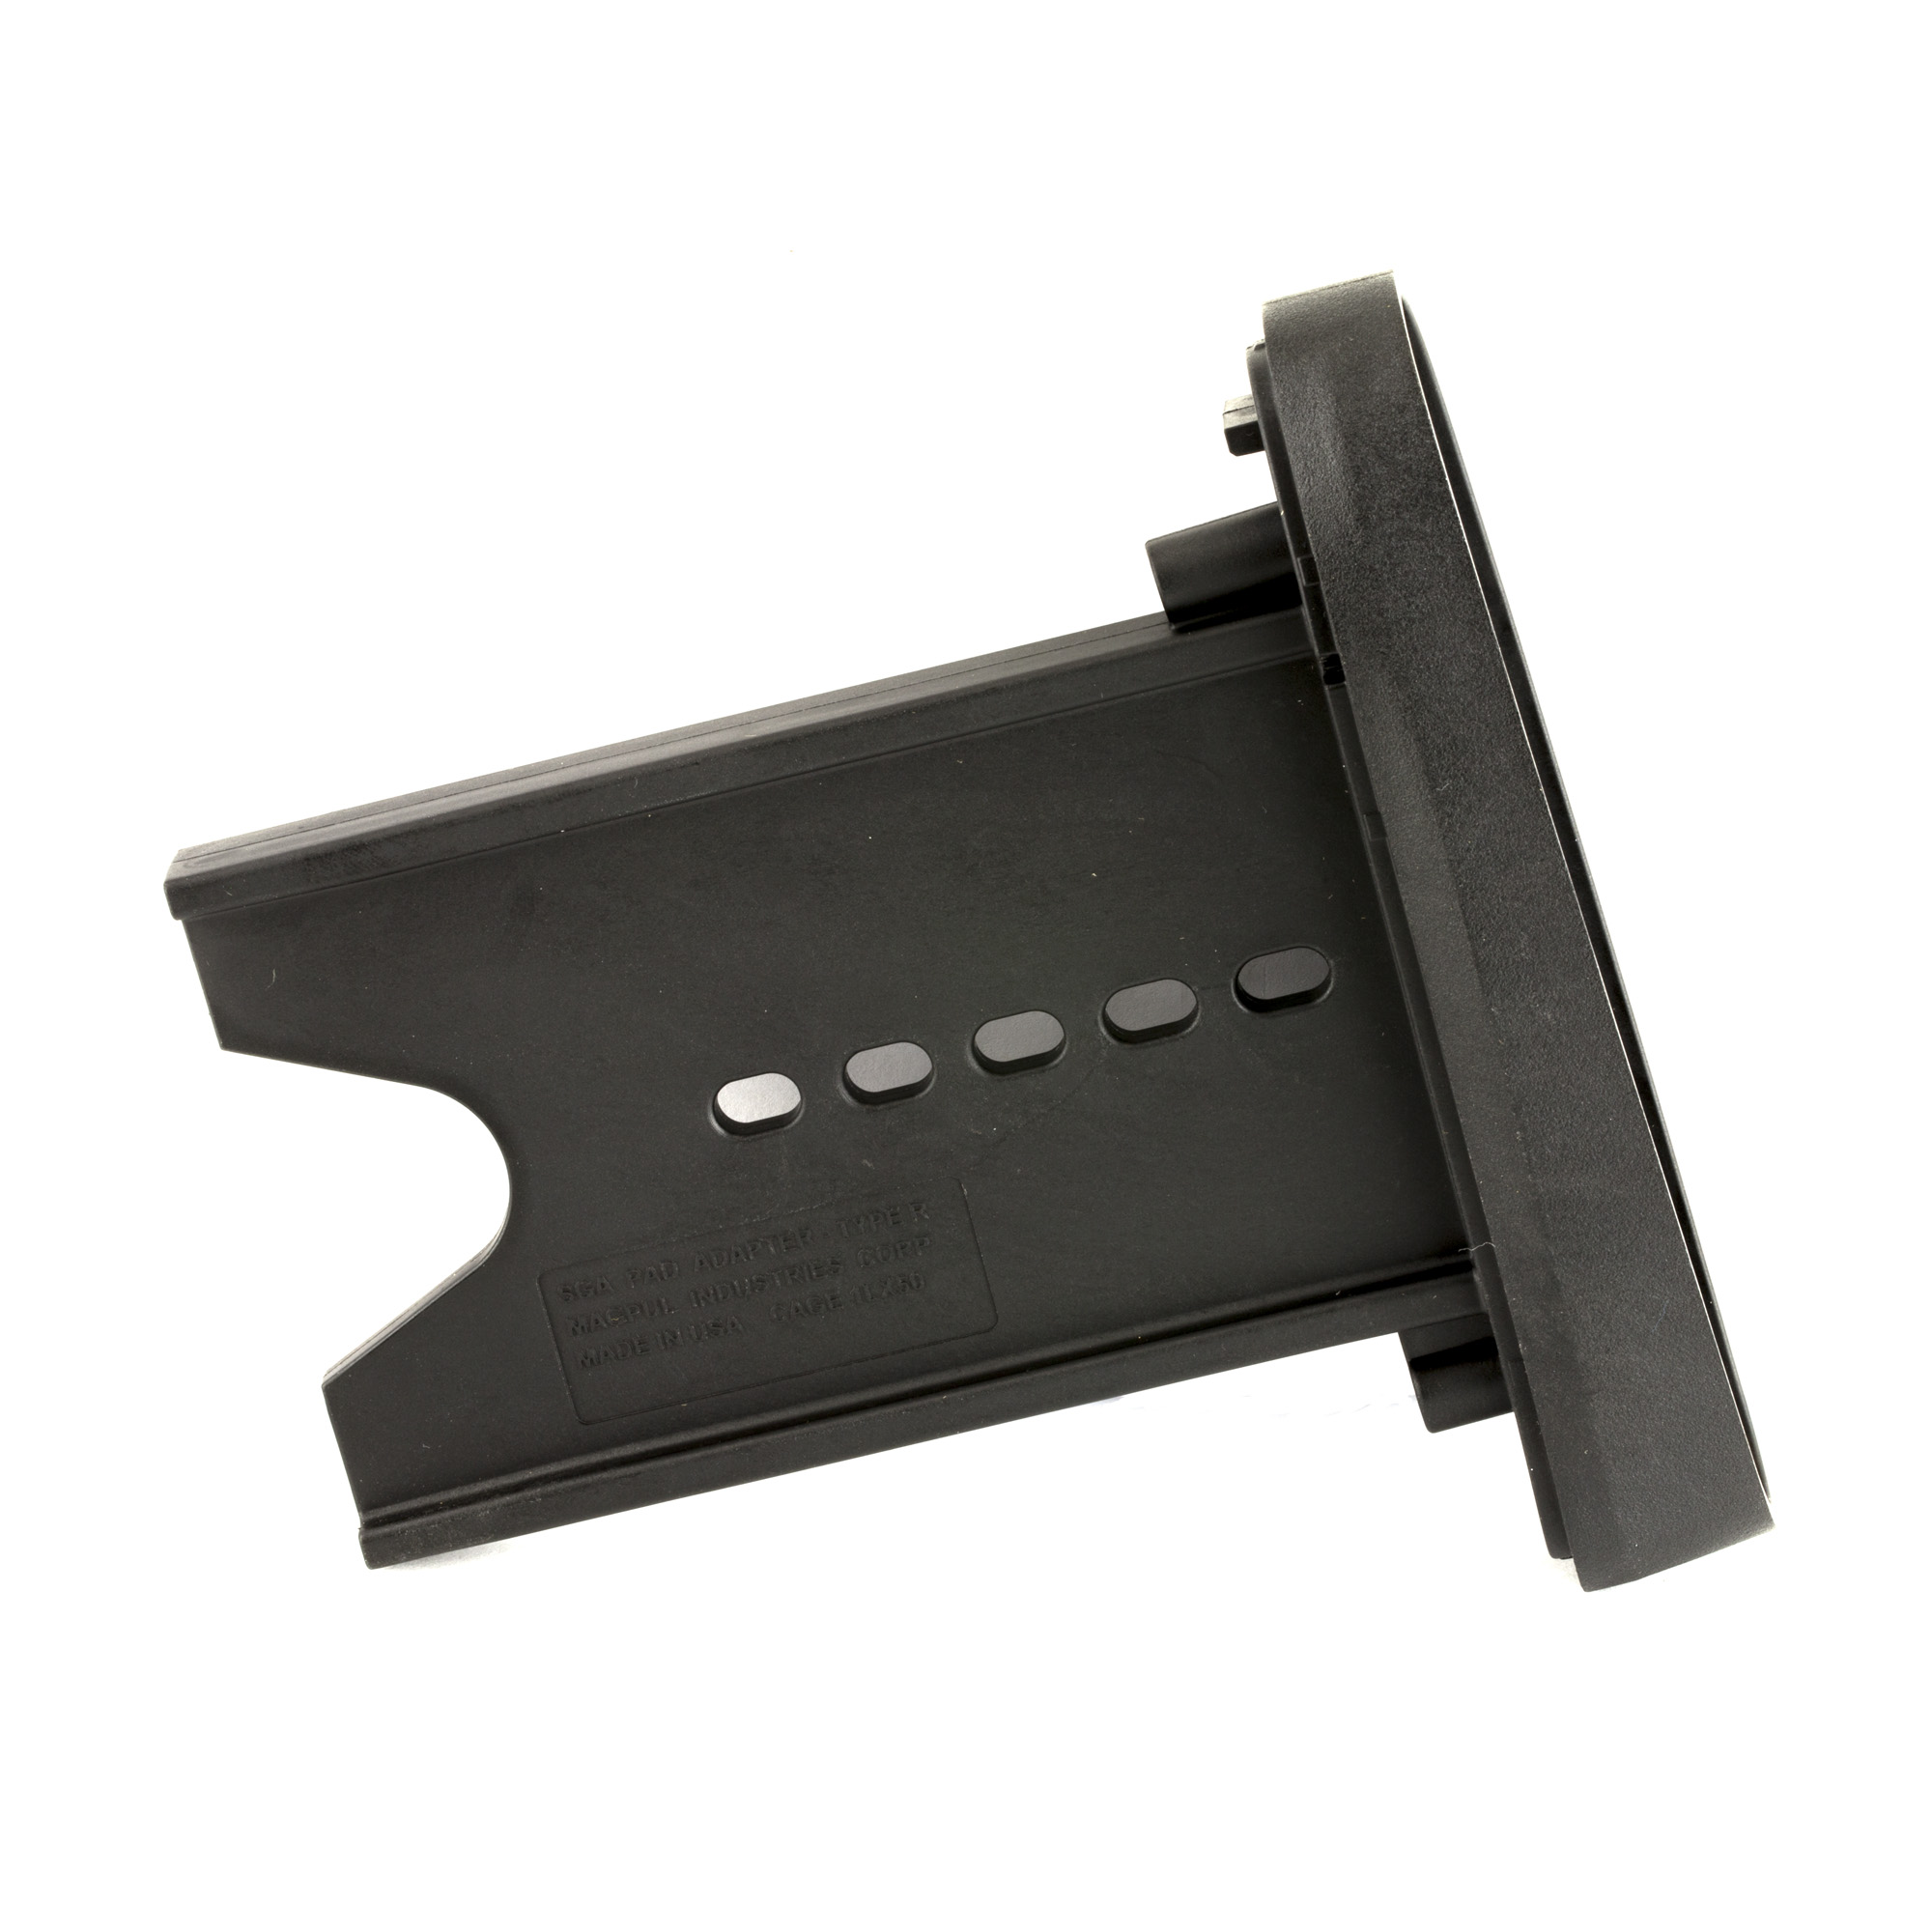 """The Hunter/SGA OEM Butt-Pad Adapter allows the user to replace the factory recoil pad on Magpul SGA Remington or Mossberg Shotgun Stocks as well as the Hunter 700 Stock with a Remington 870 synthetic-pattern butt-pad of their choice (not included). By utilizing the original spacers"""" this adapter retains all the functionality of the Hunter and SGA Stocks while providing for additional butt-pad options."""